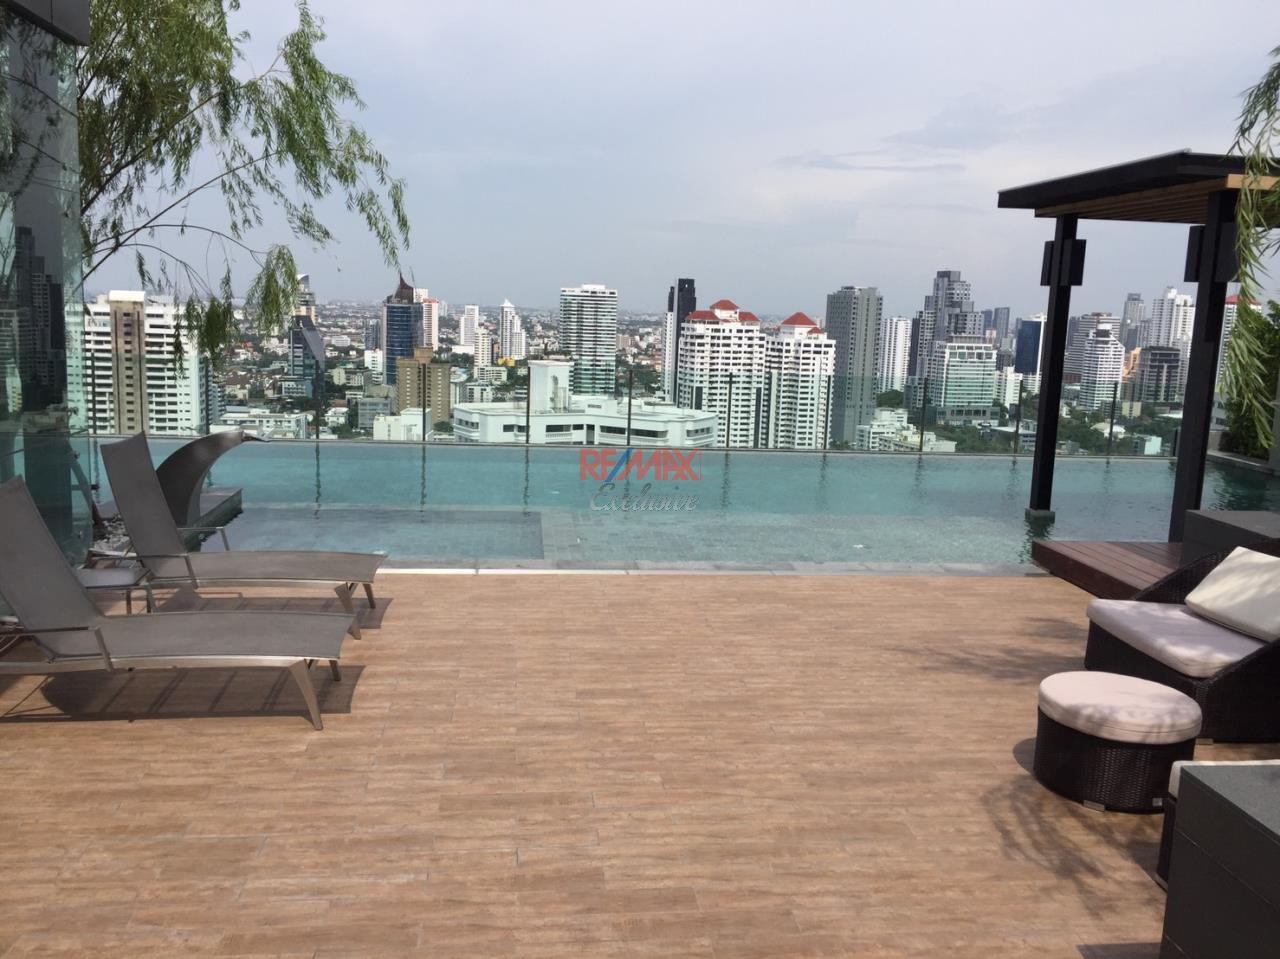 RE/MAX Exclusive Agency's H Sukhumvit 43, 2 Bedroom, 59 Sq.M., Fully-Furnished, High floor - Amazing View! 19